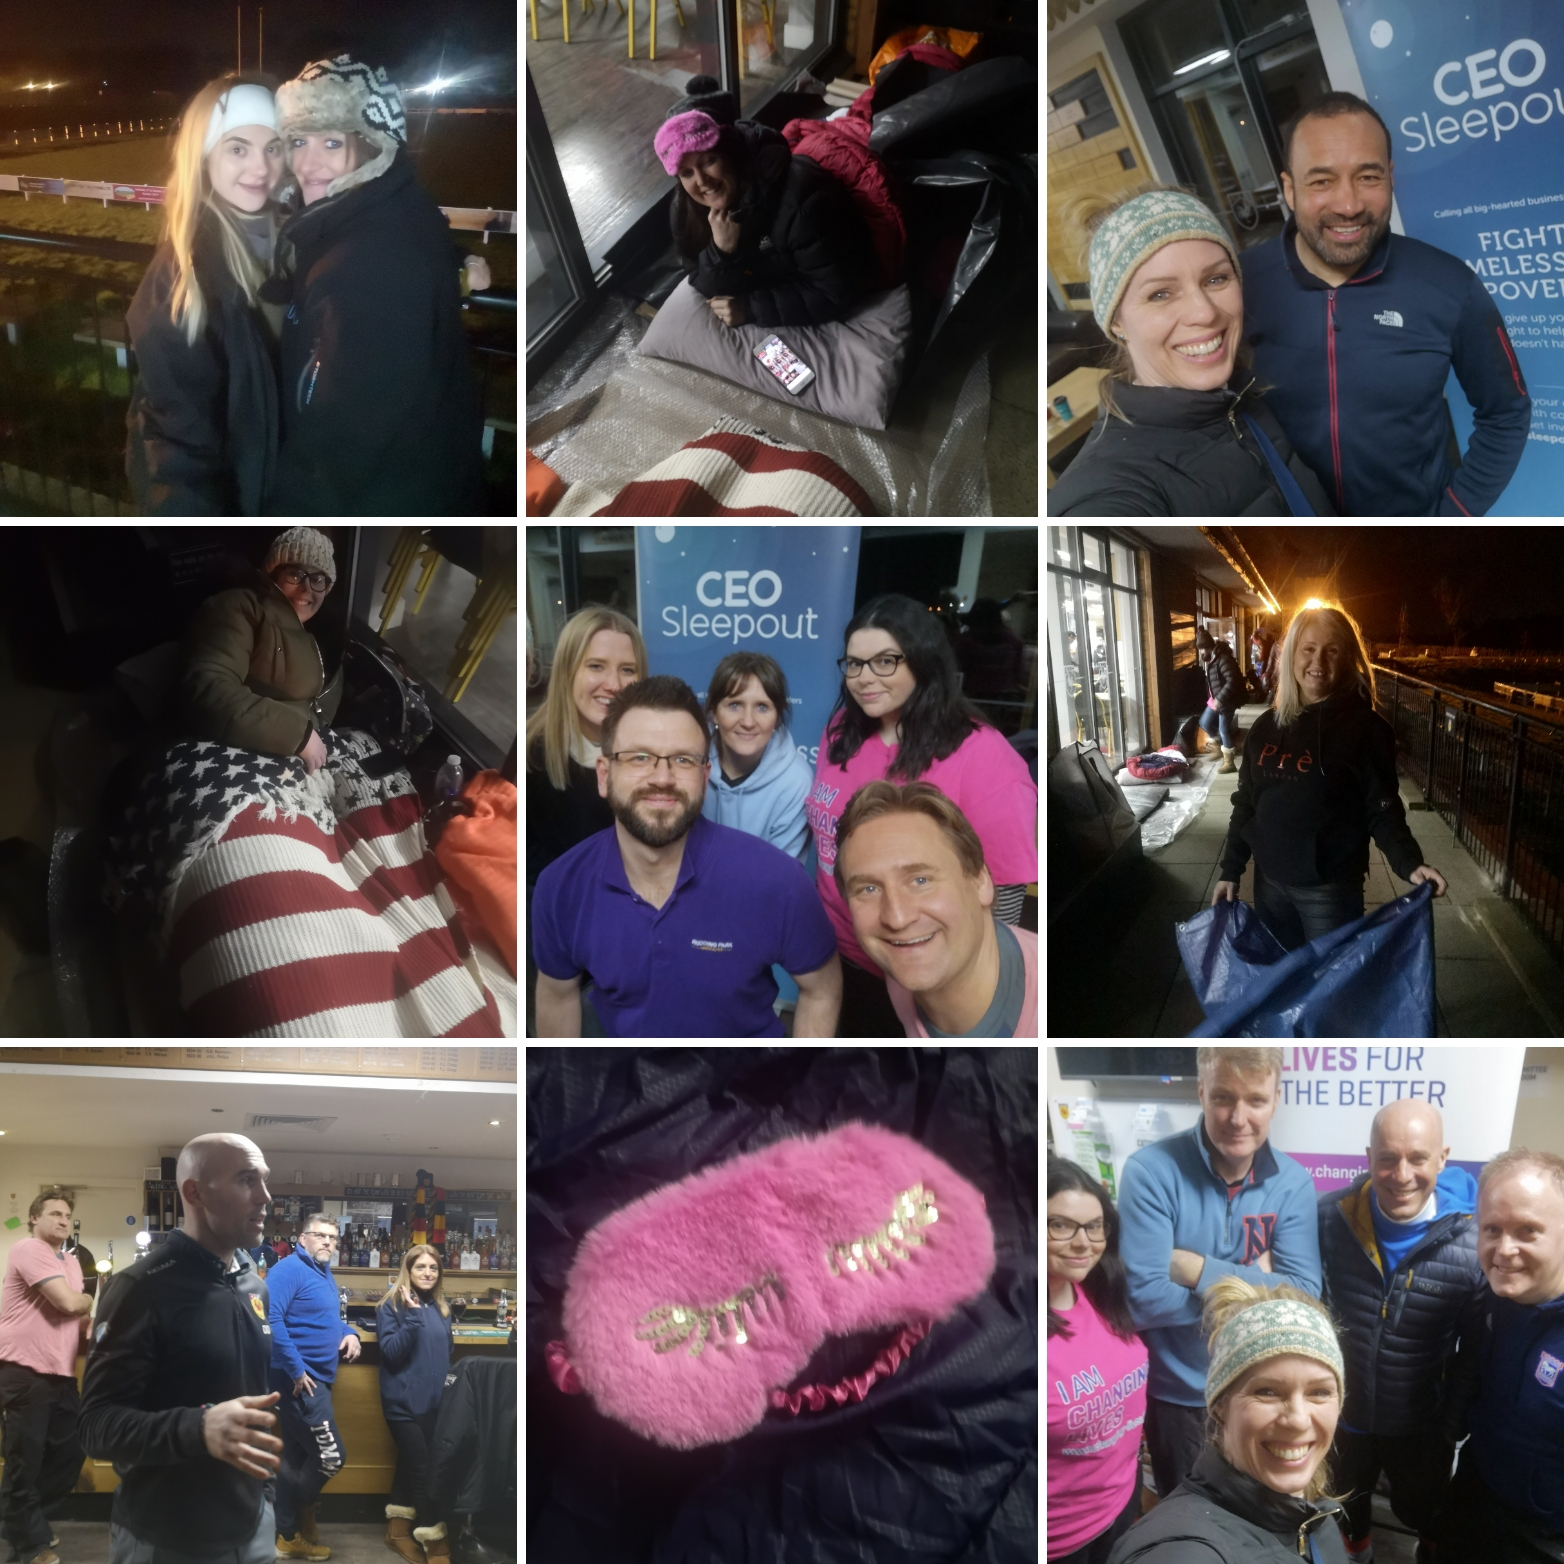 Images of participants in their sleeping out gear